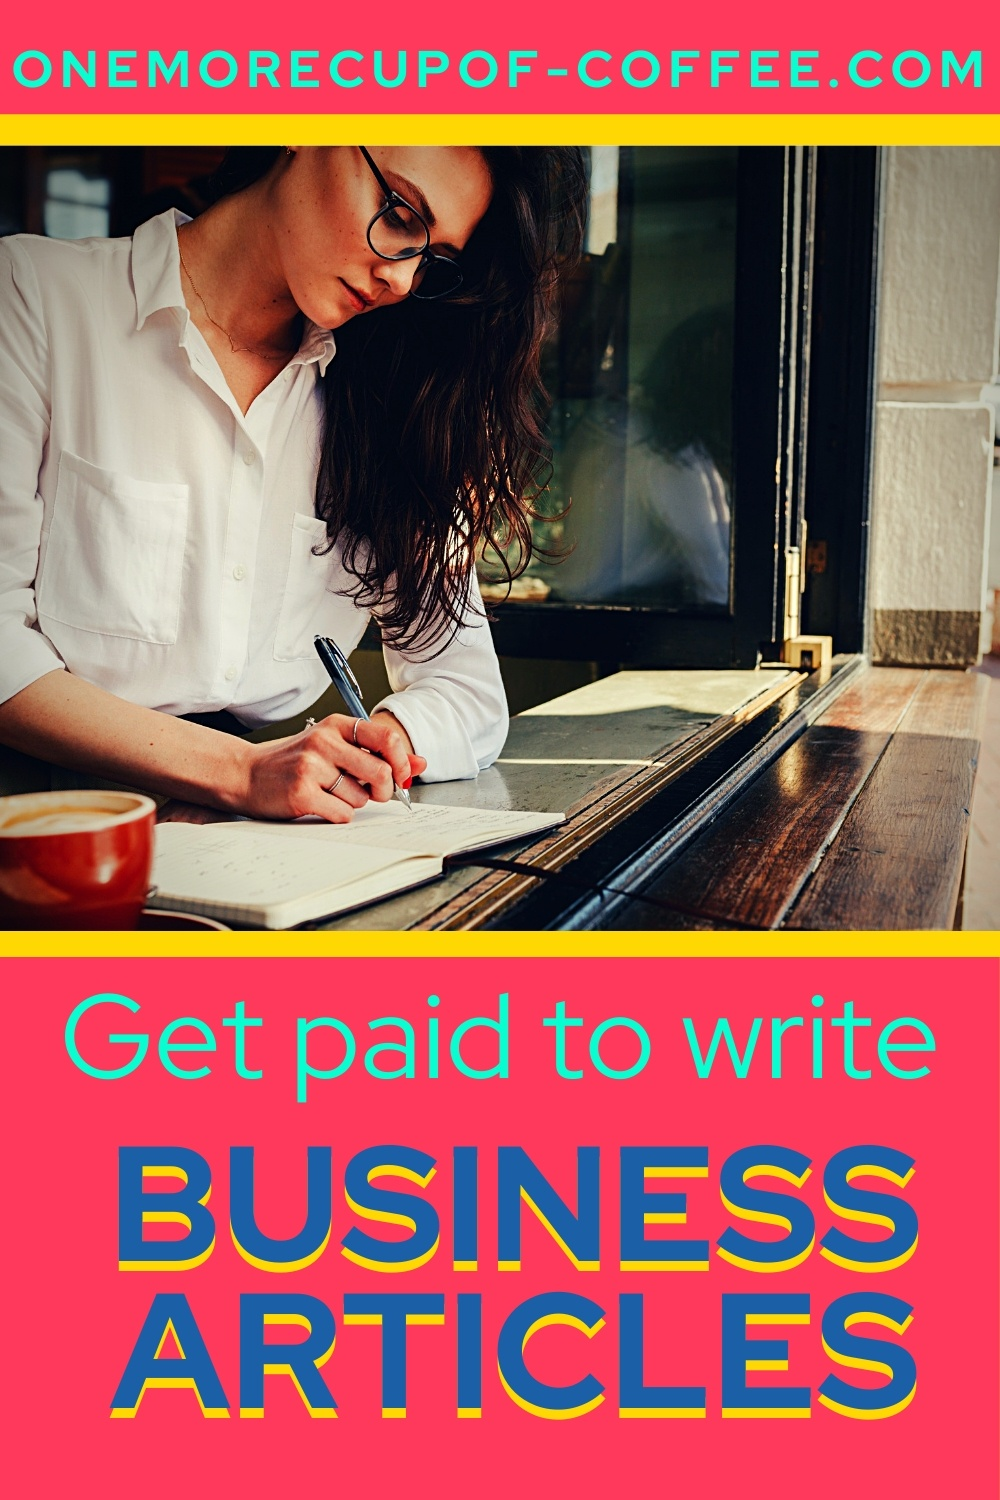 Woman writing with pen and paper representing getting paid to write business articles.